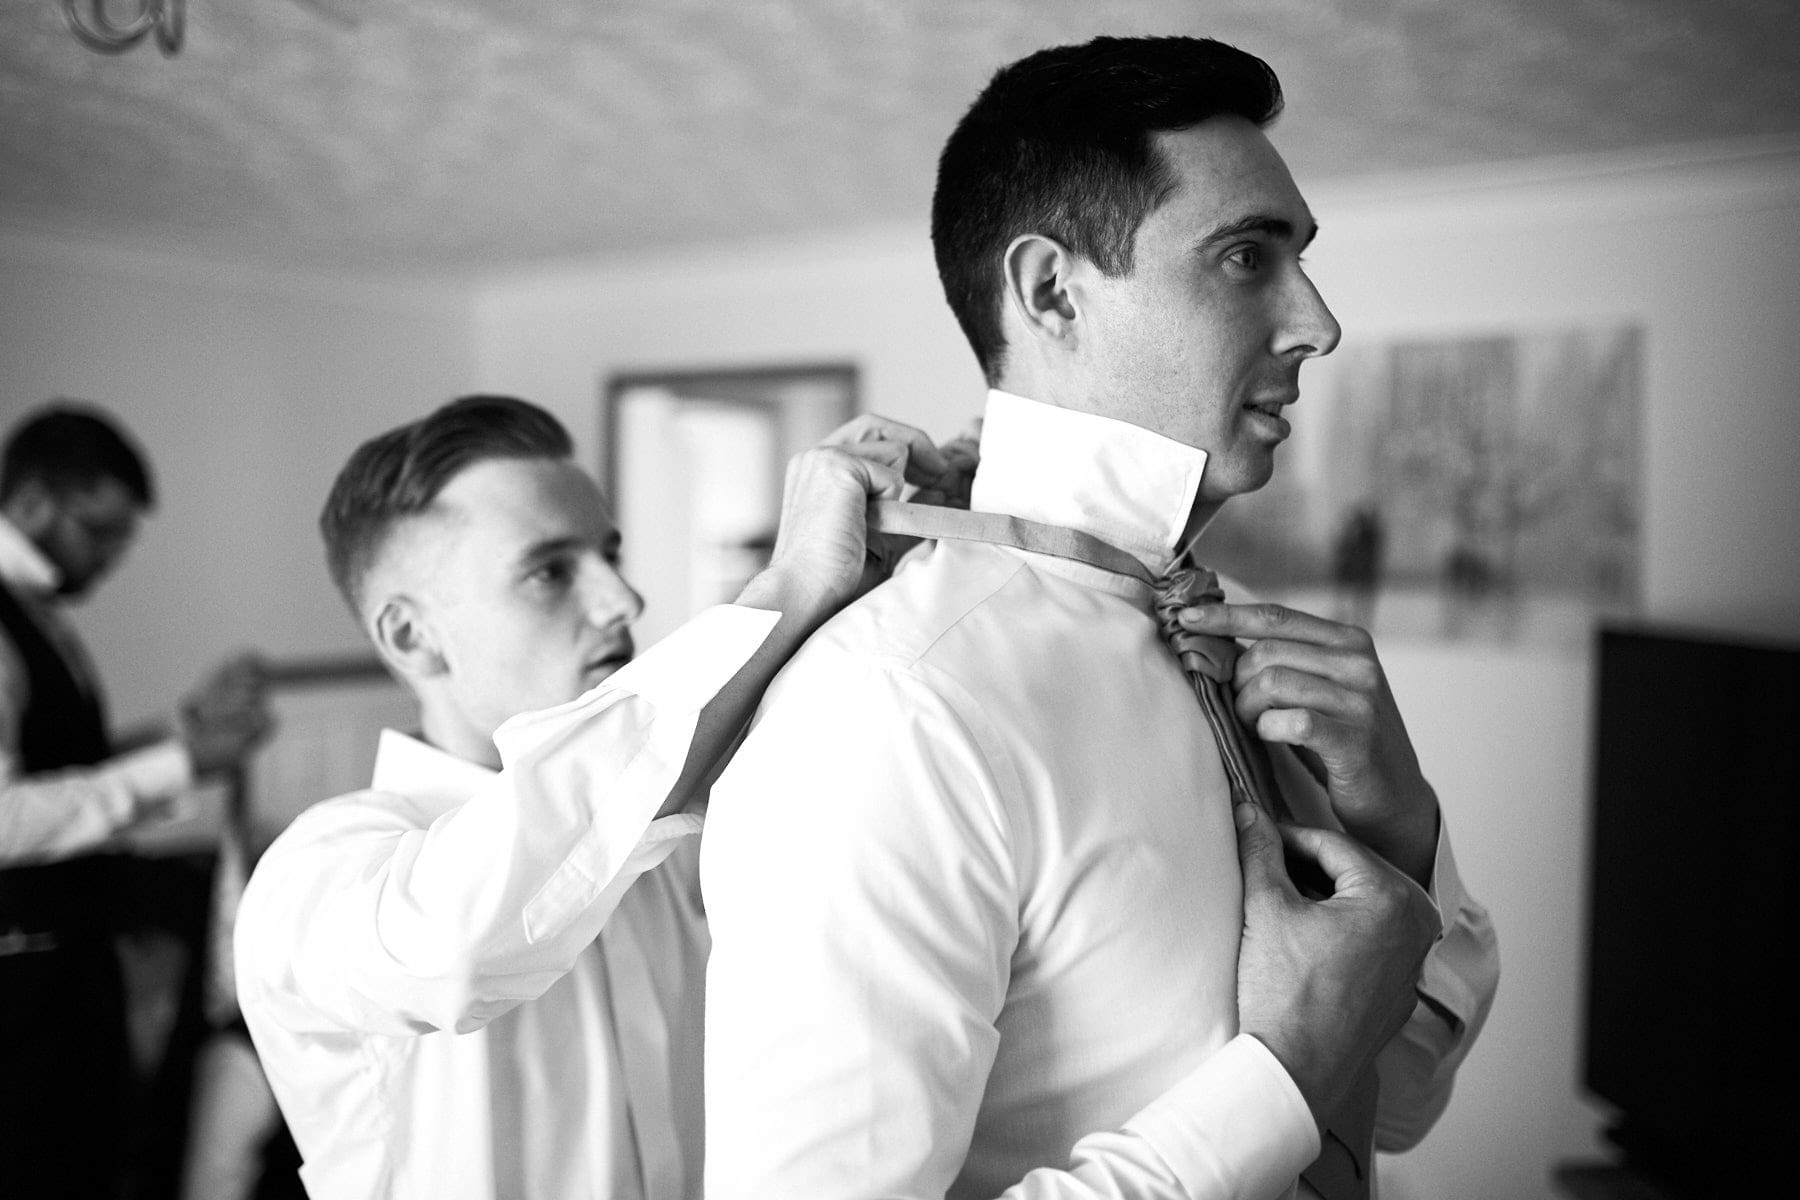 The best man helps the groom adjust his tie on the morning of his wedding.